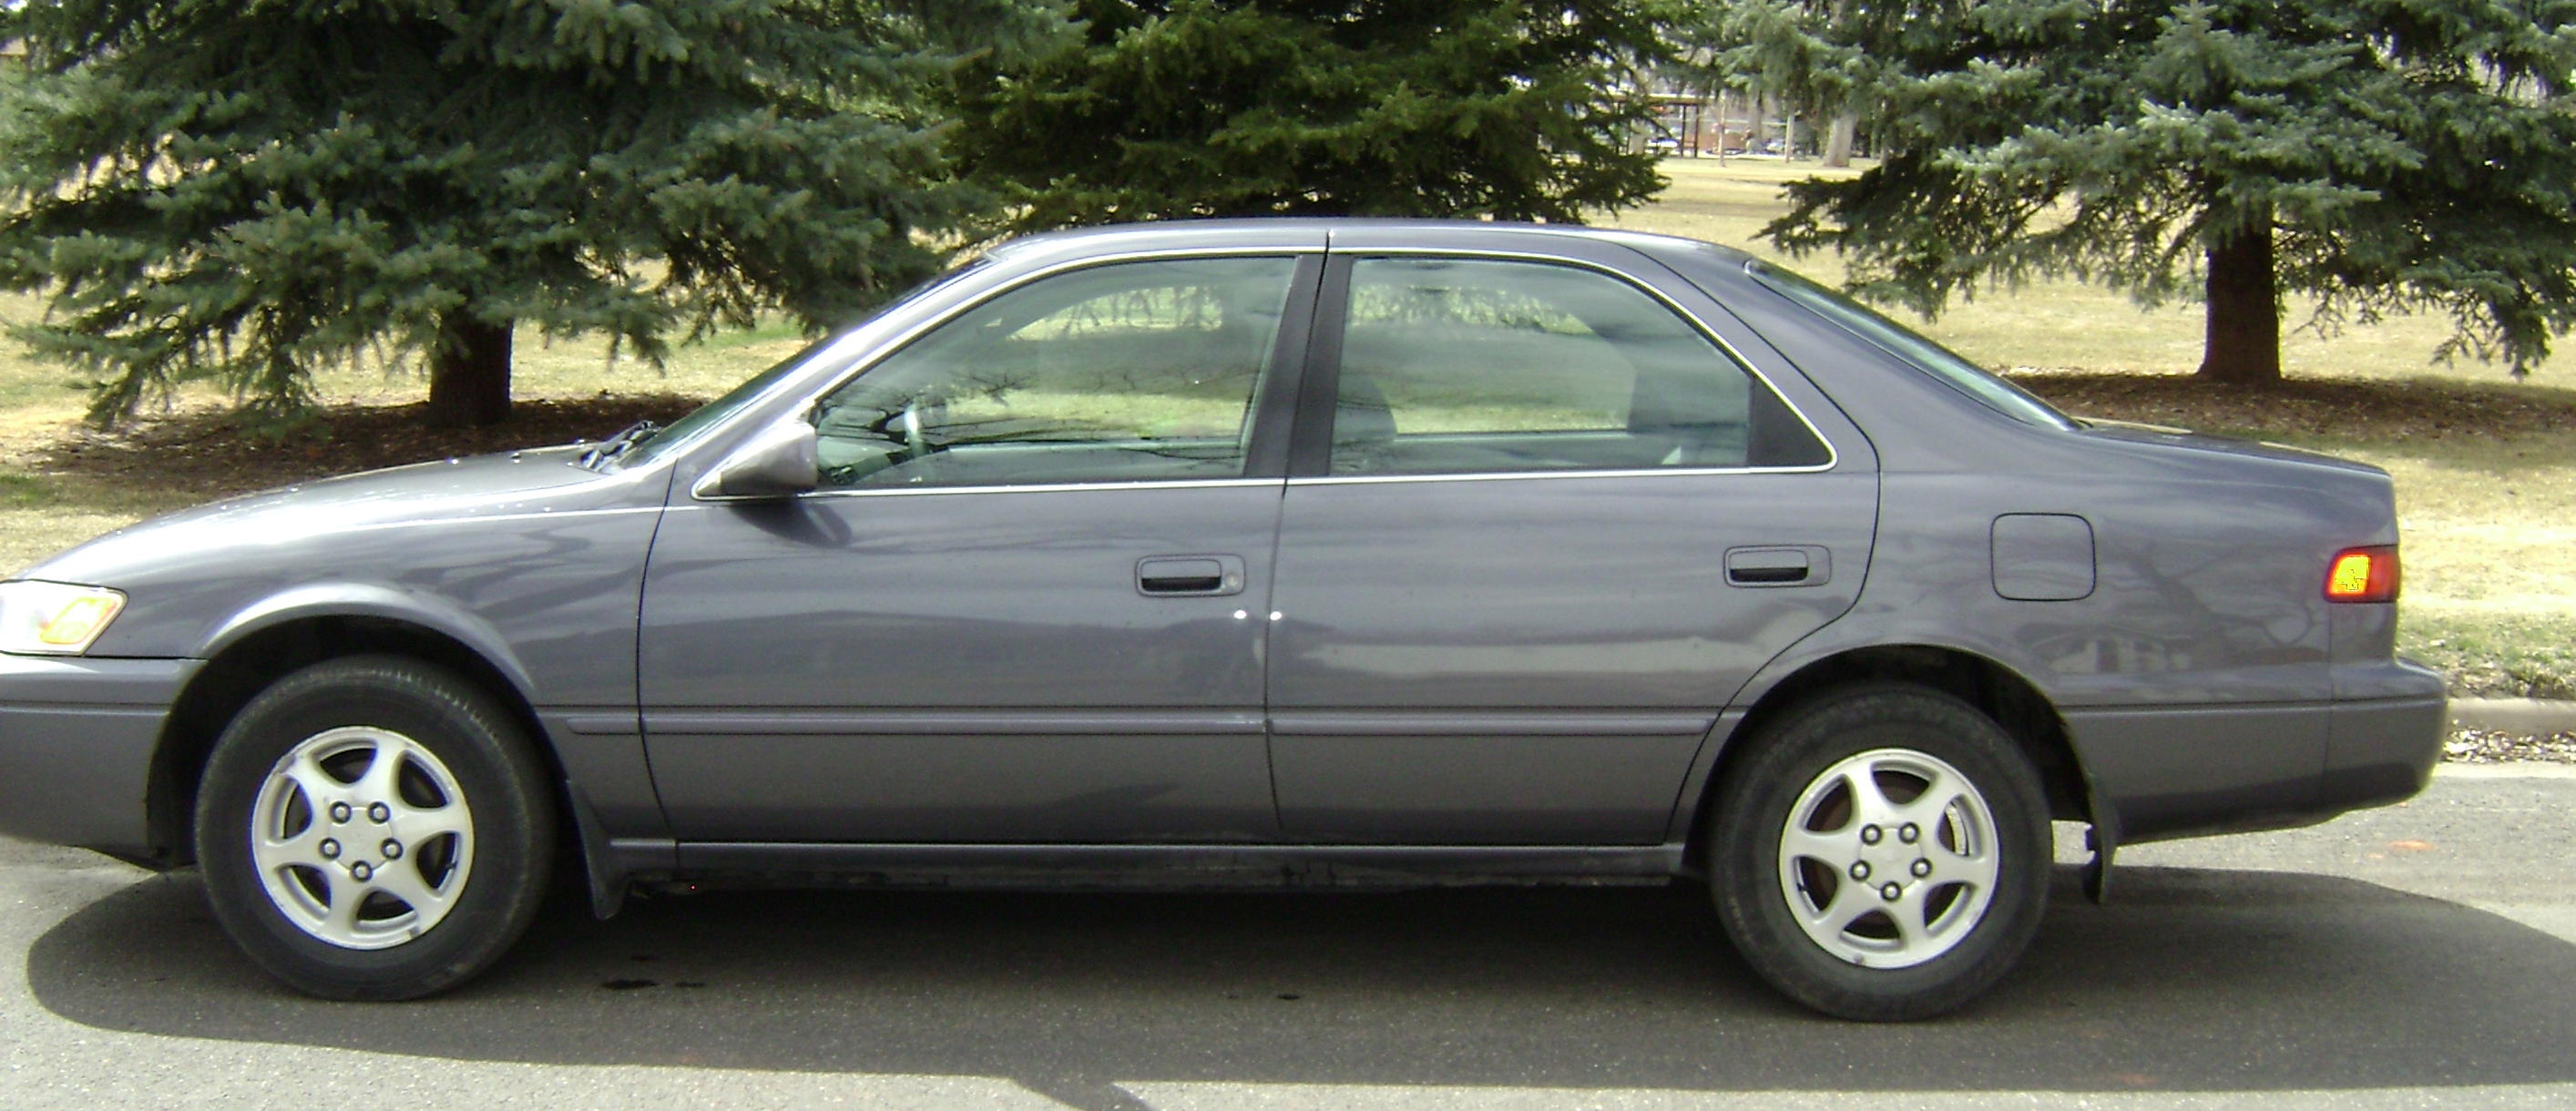 1997 Toyota Camry Le 134142 At Alpine Motors